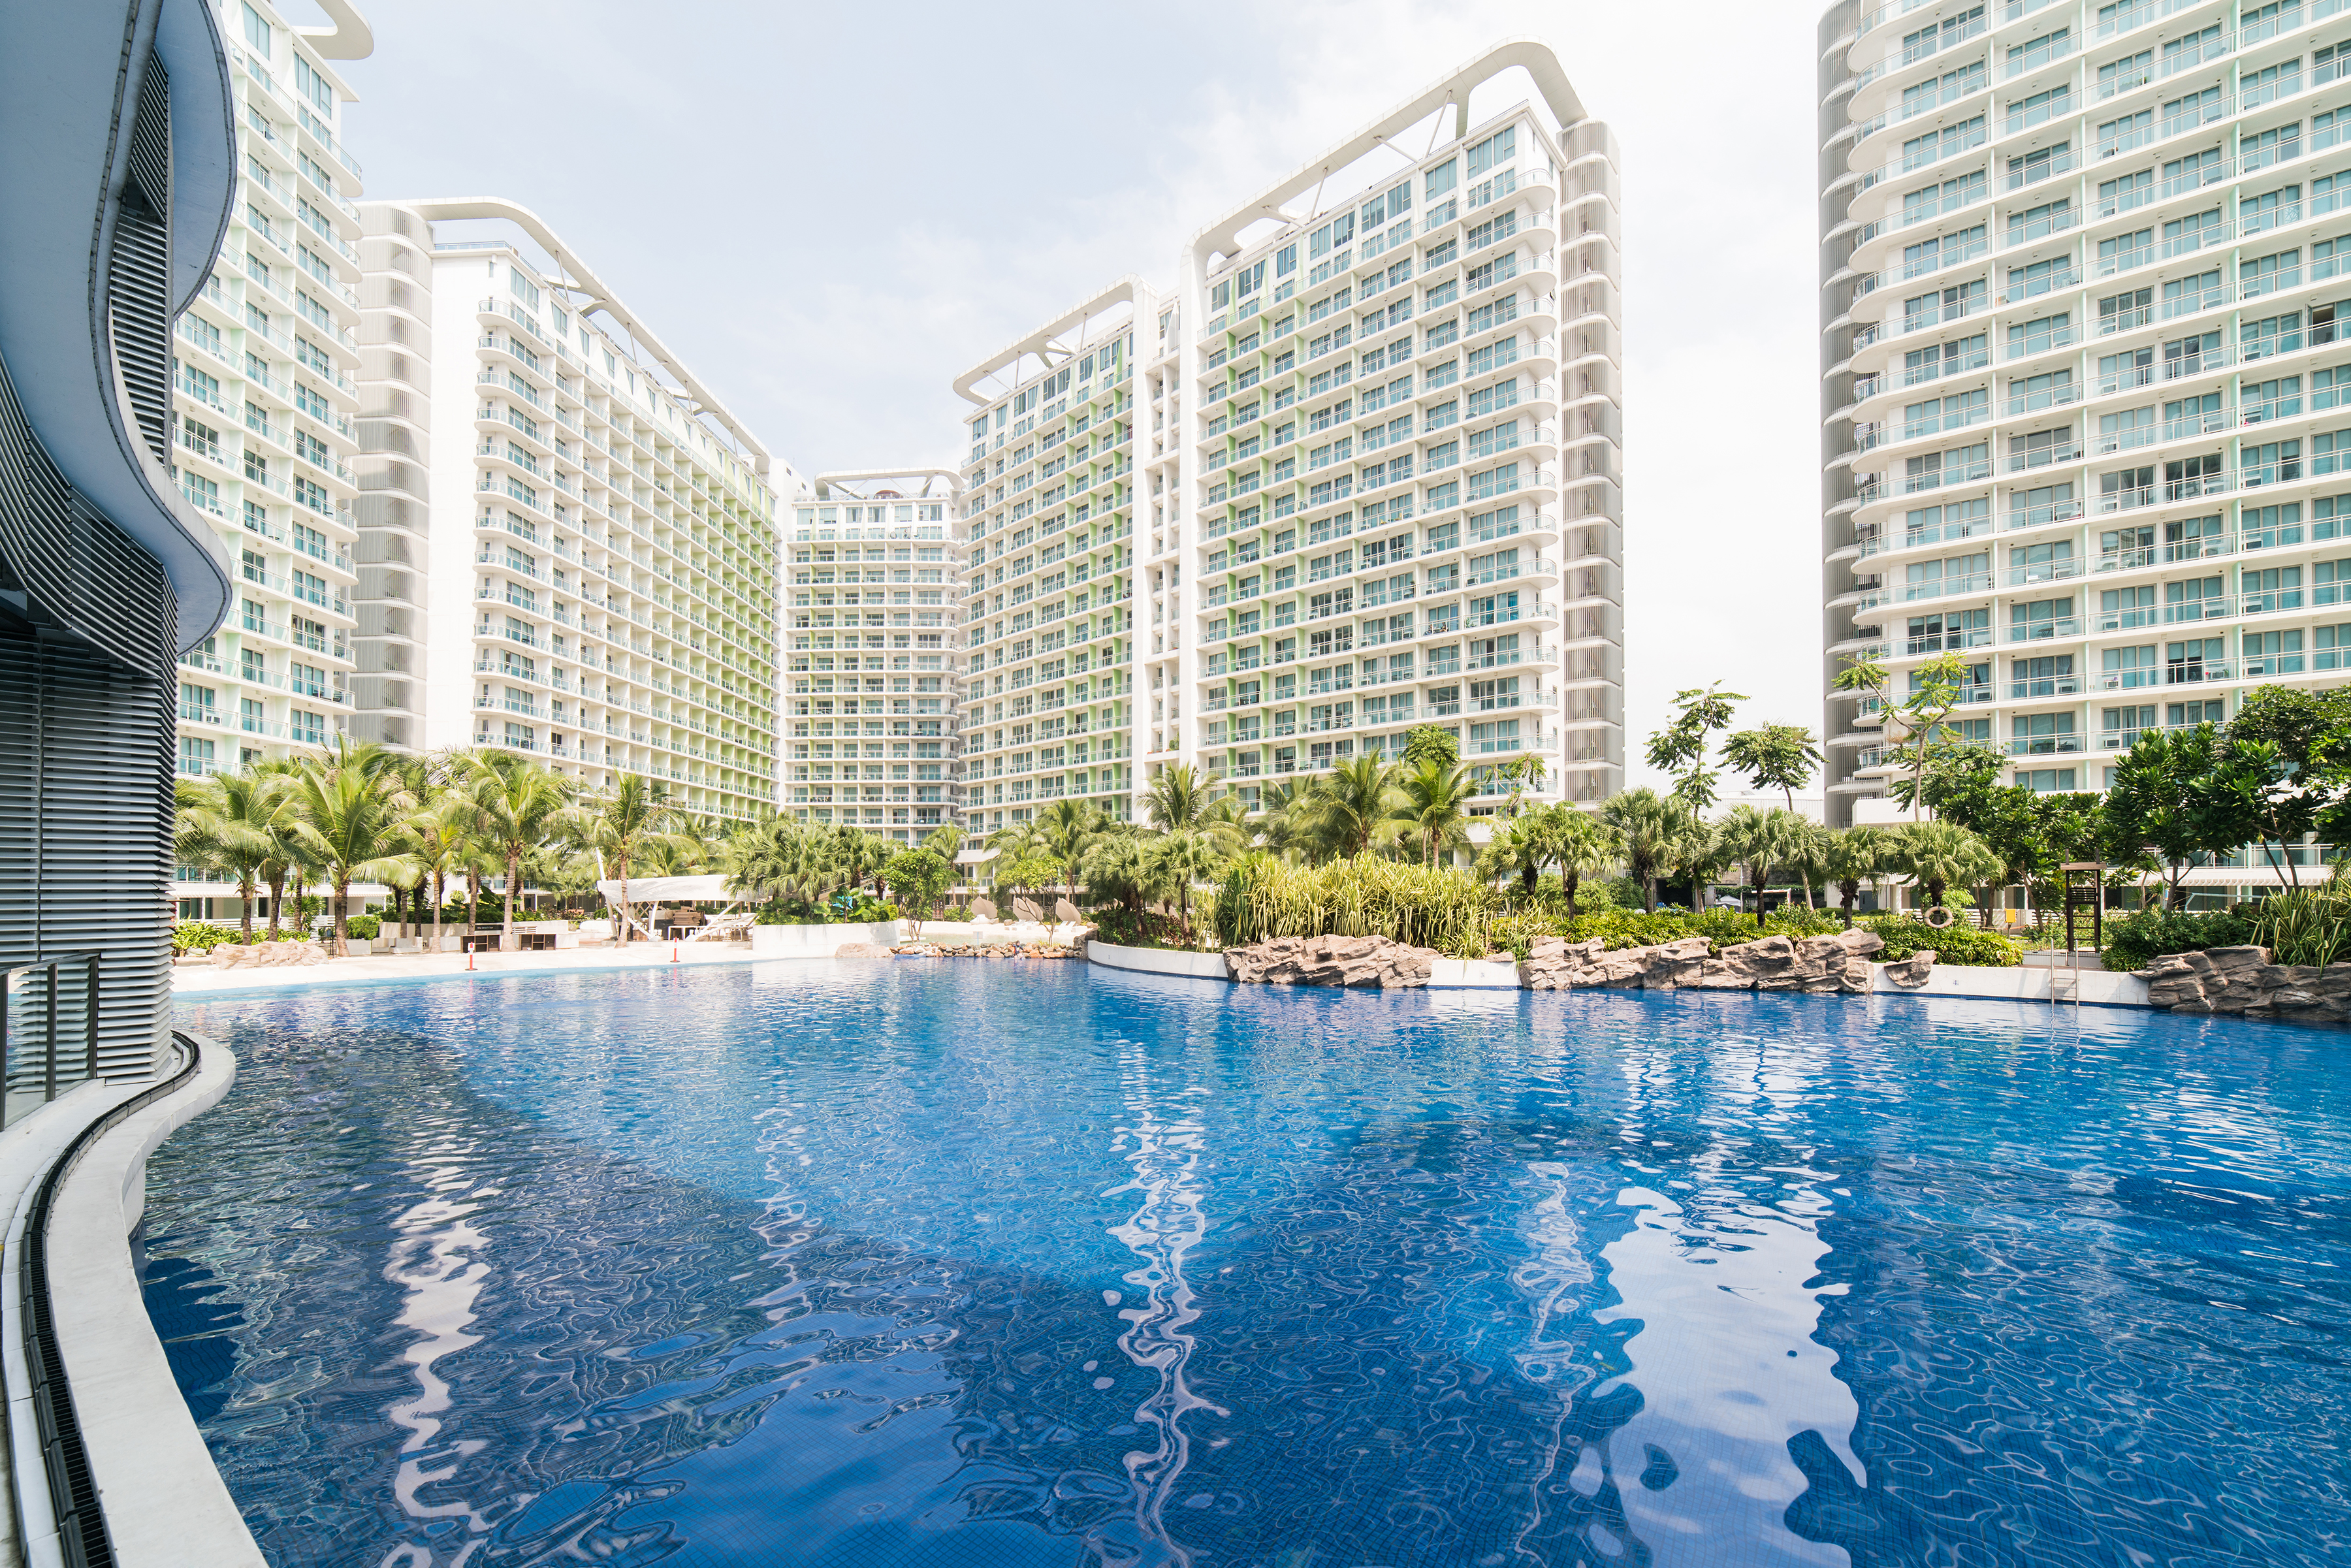 Condo for Sale in Metro Manila | Century Properties